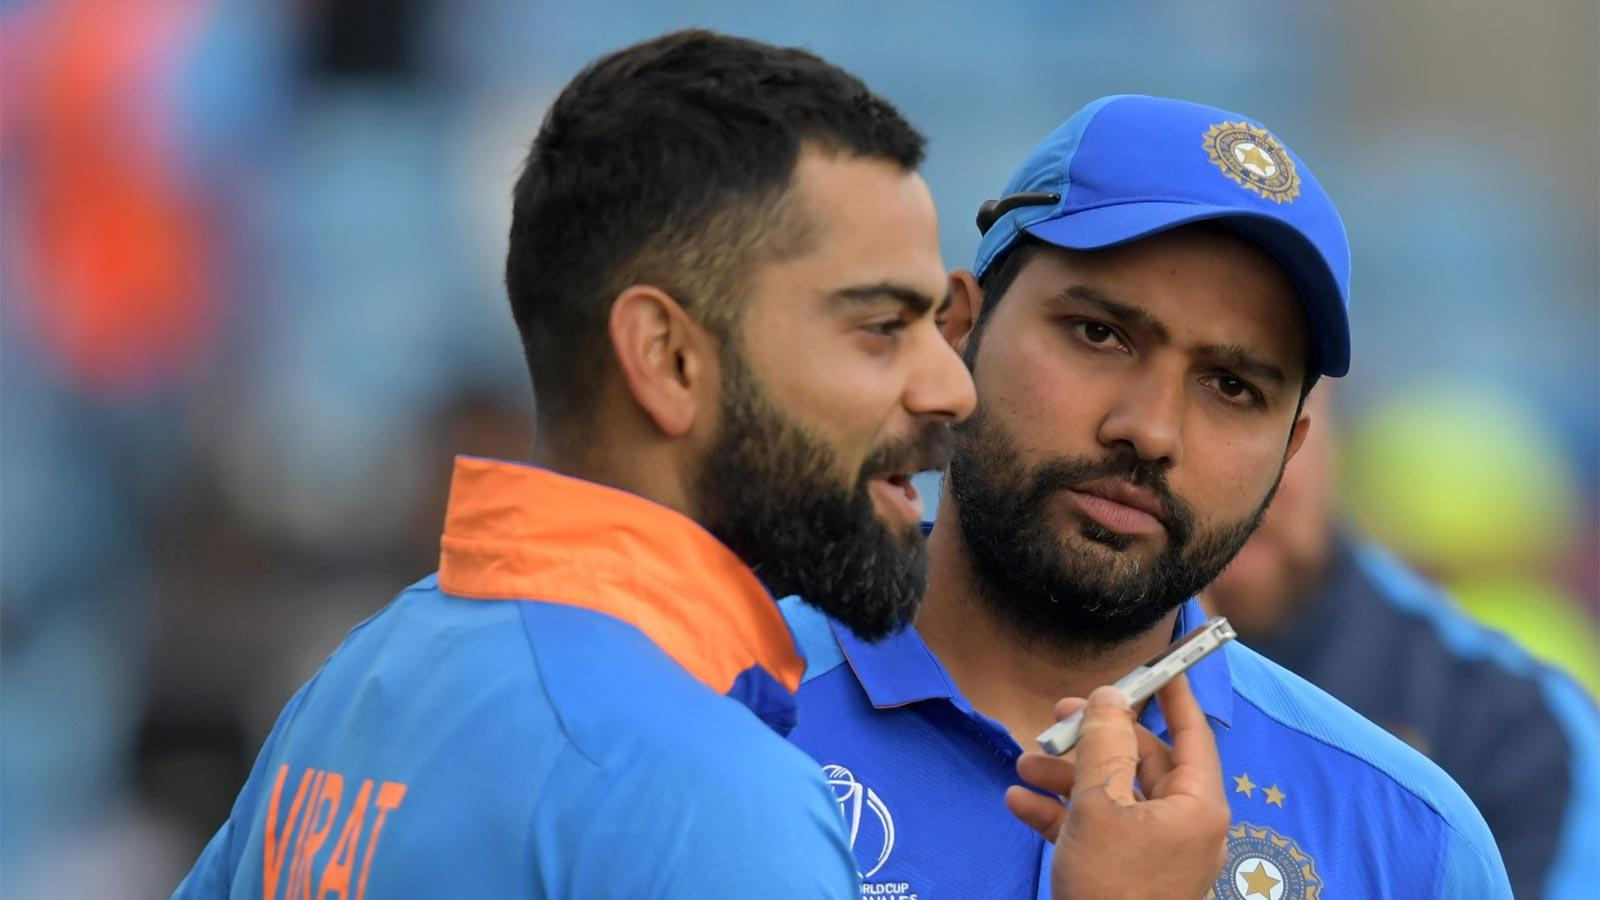 rift-between-virat-kohli-and-rohit-sharma-after-world-cup-exit-bcci-reviews-split-captaincy-sources